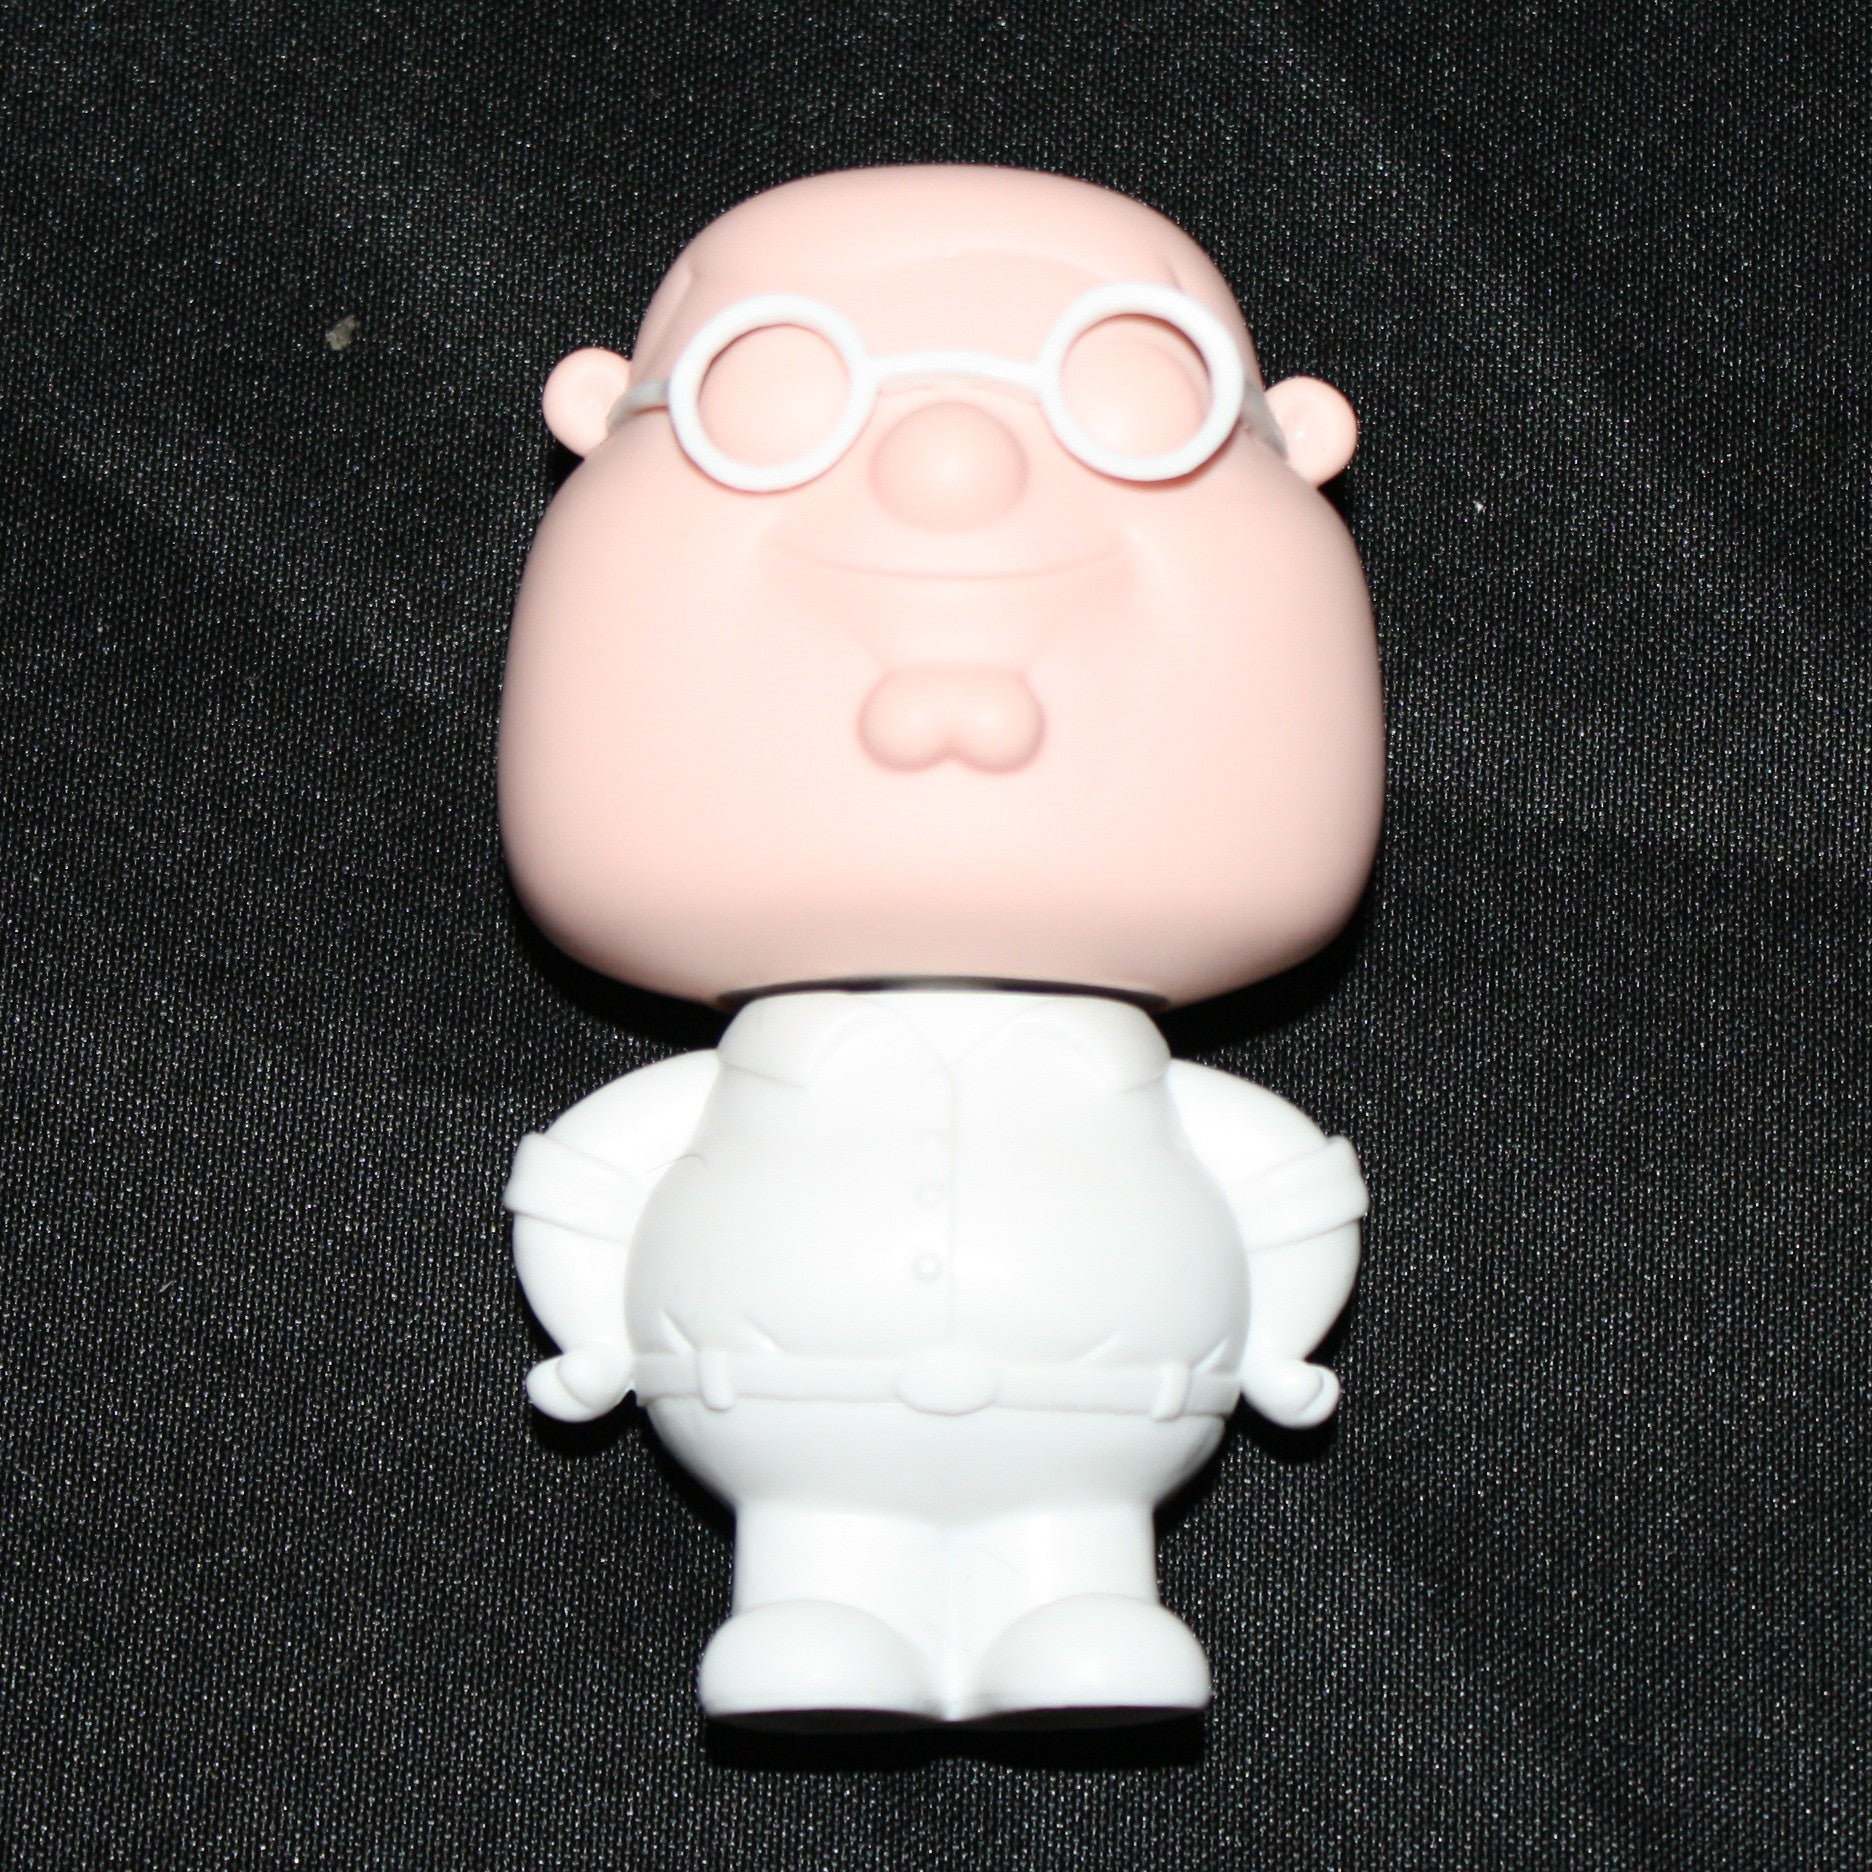 Peter Griffin [Family Guy] Proto